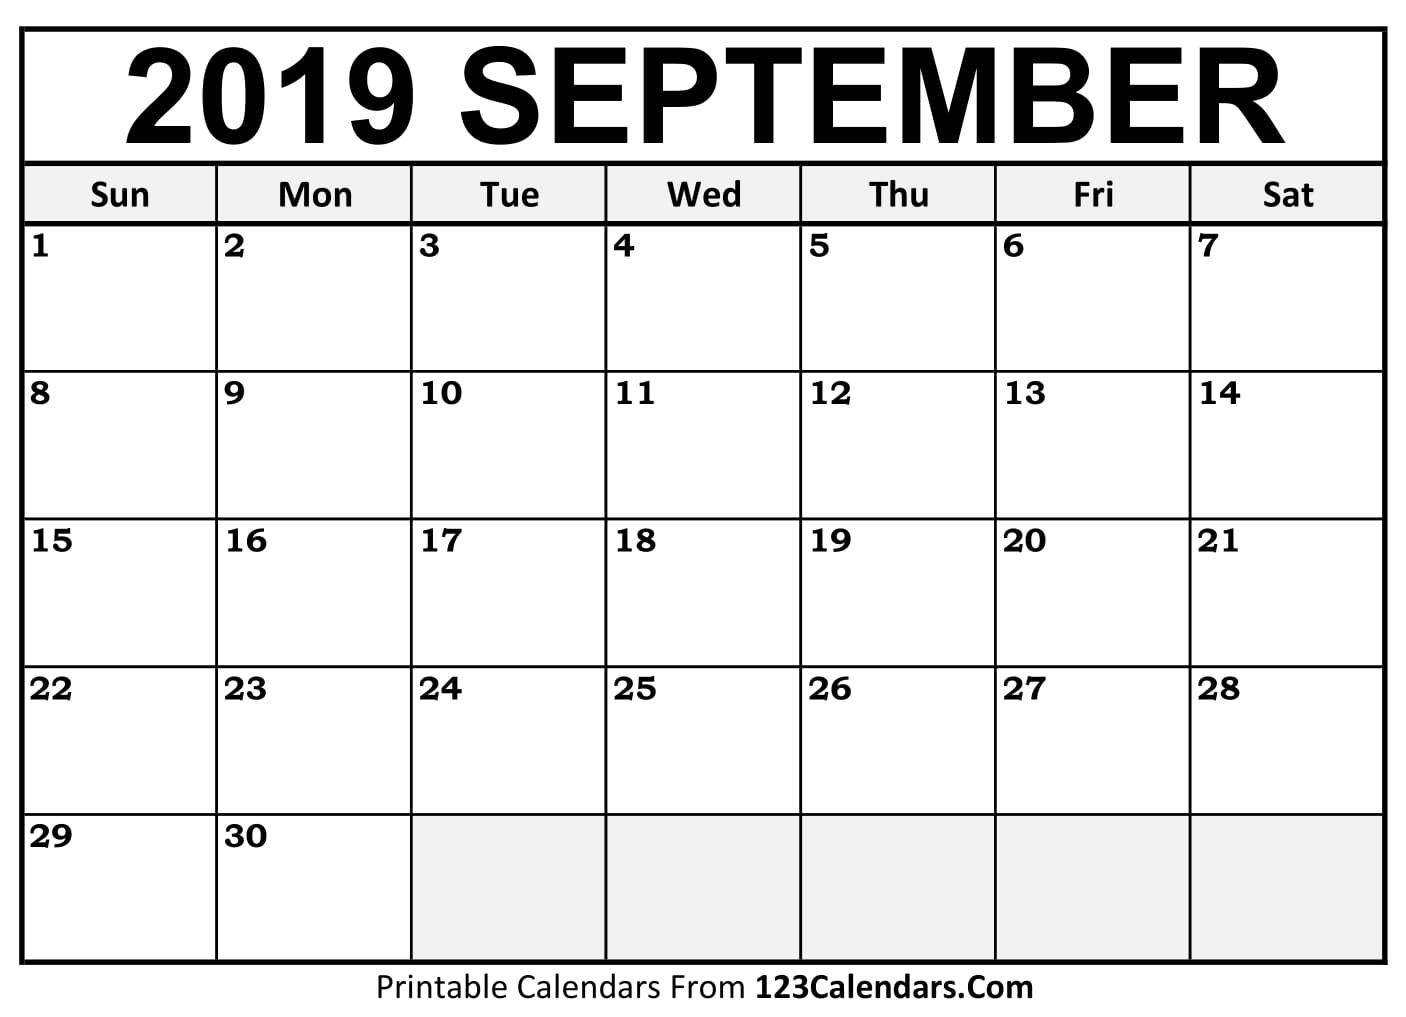 September 2019 Calendar Blank Easily Printable 123calendars